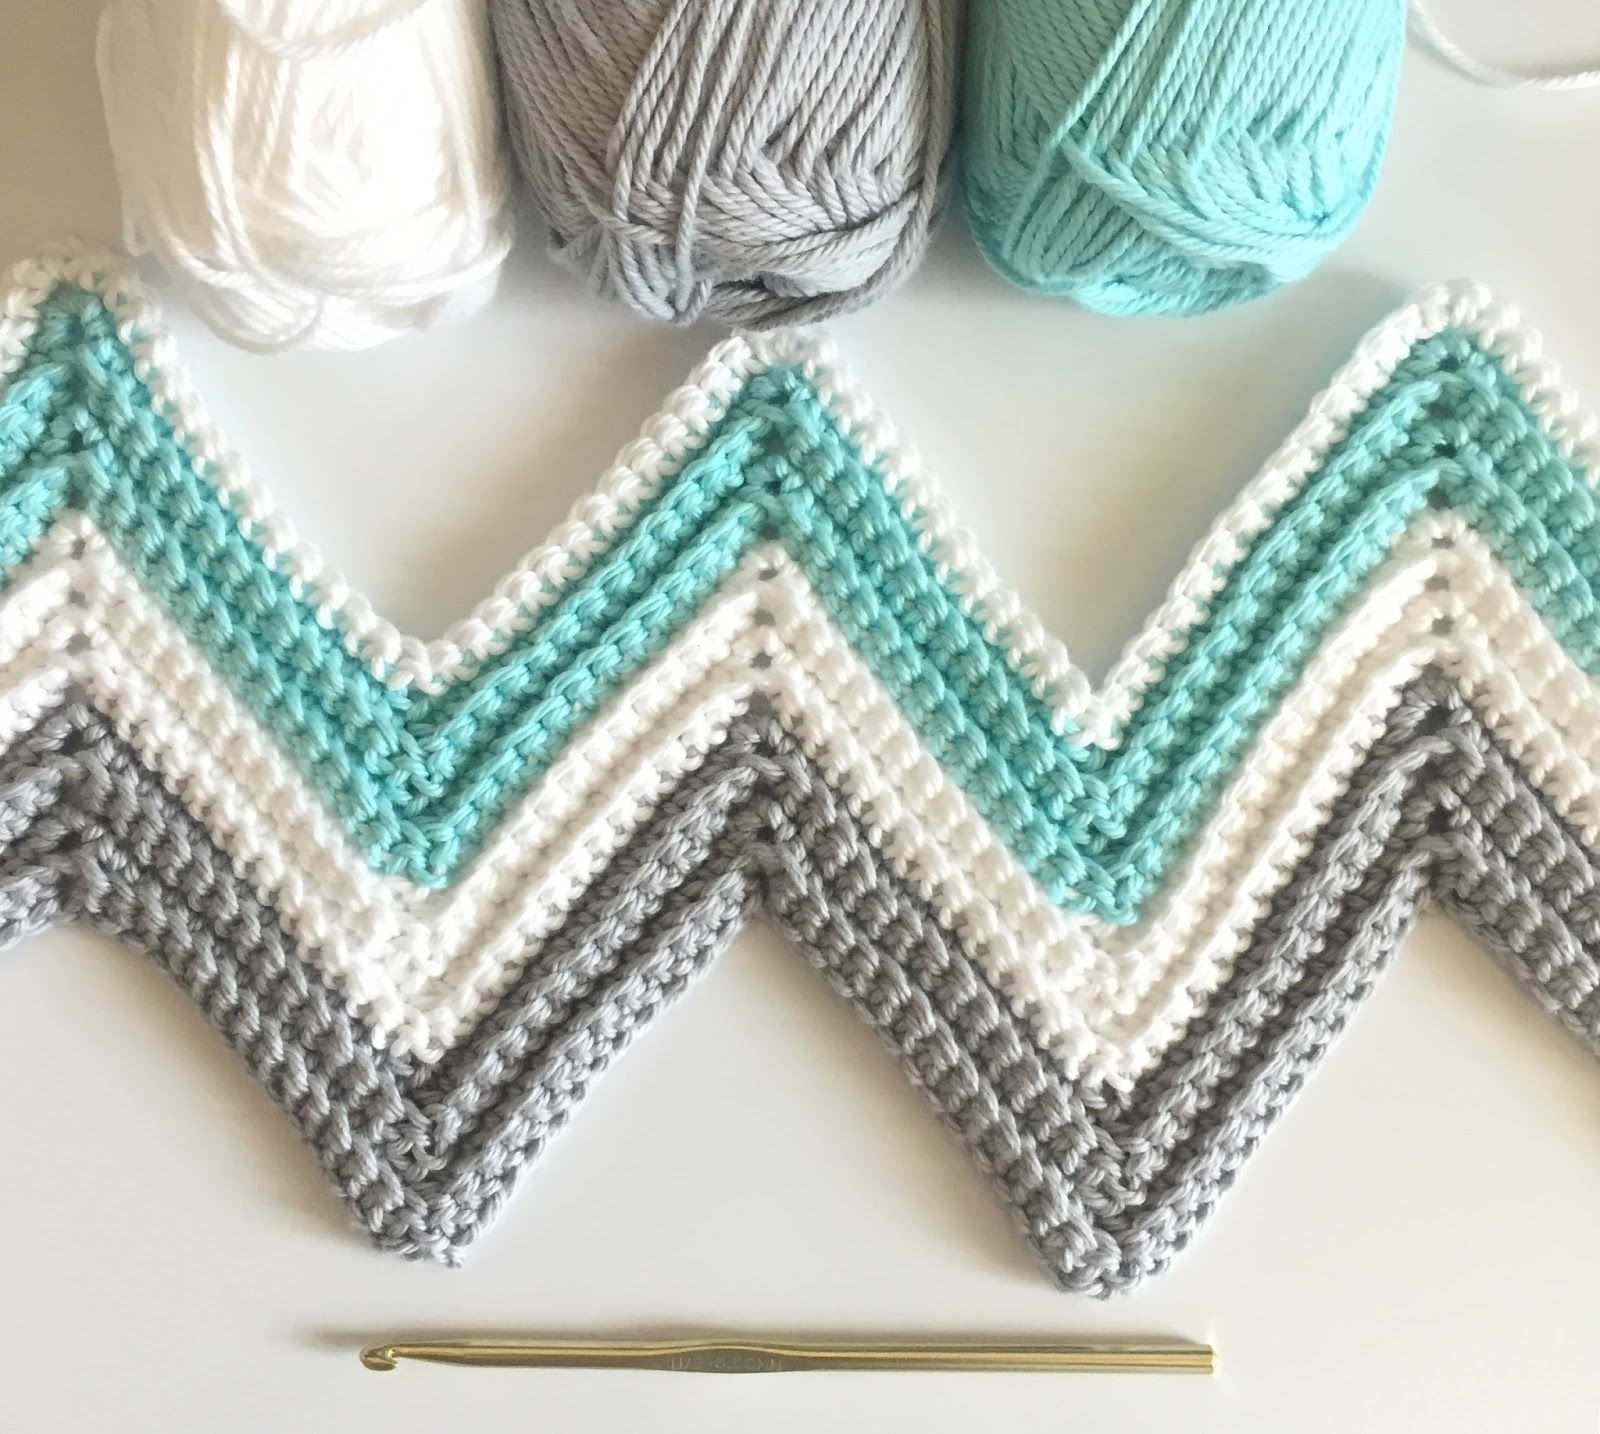 Single Crochet Chevron Blanket in Mint, Gray, and White | Daisy Farm ...